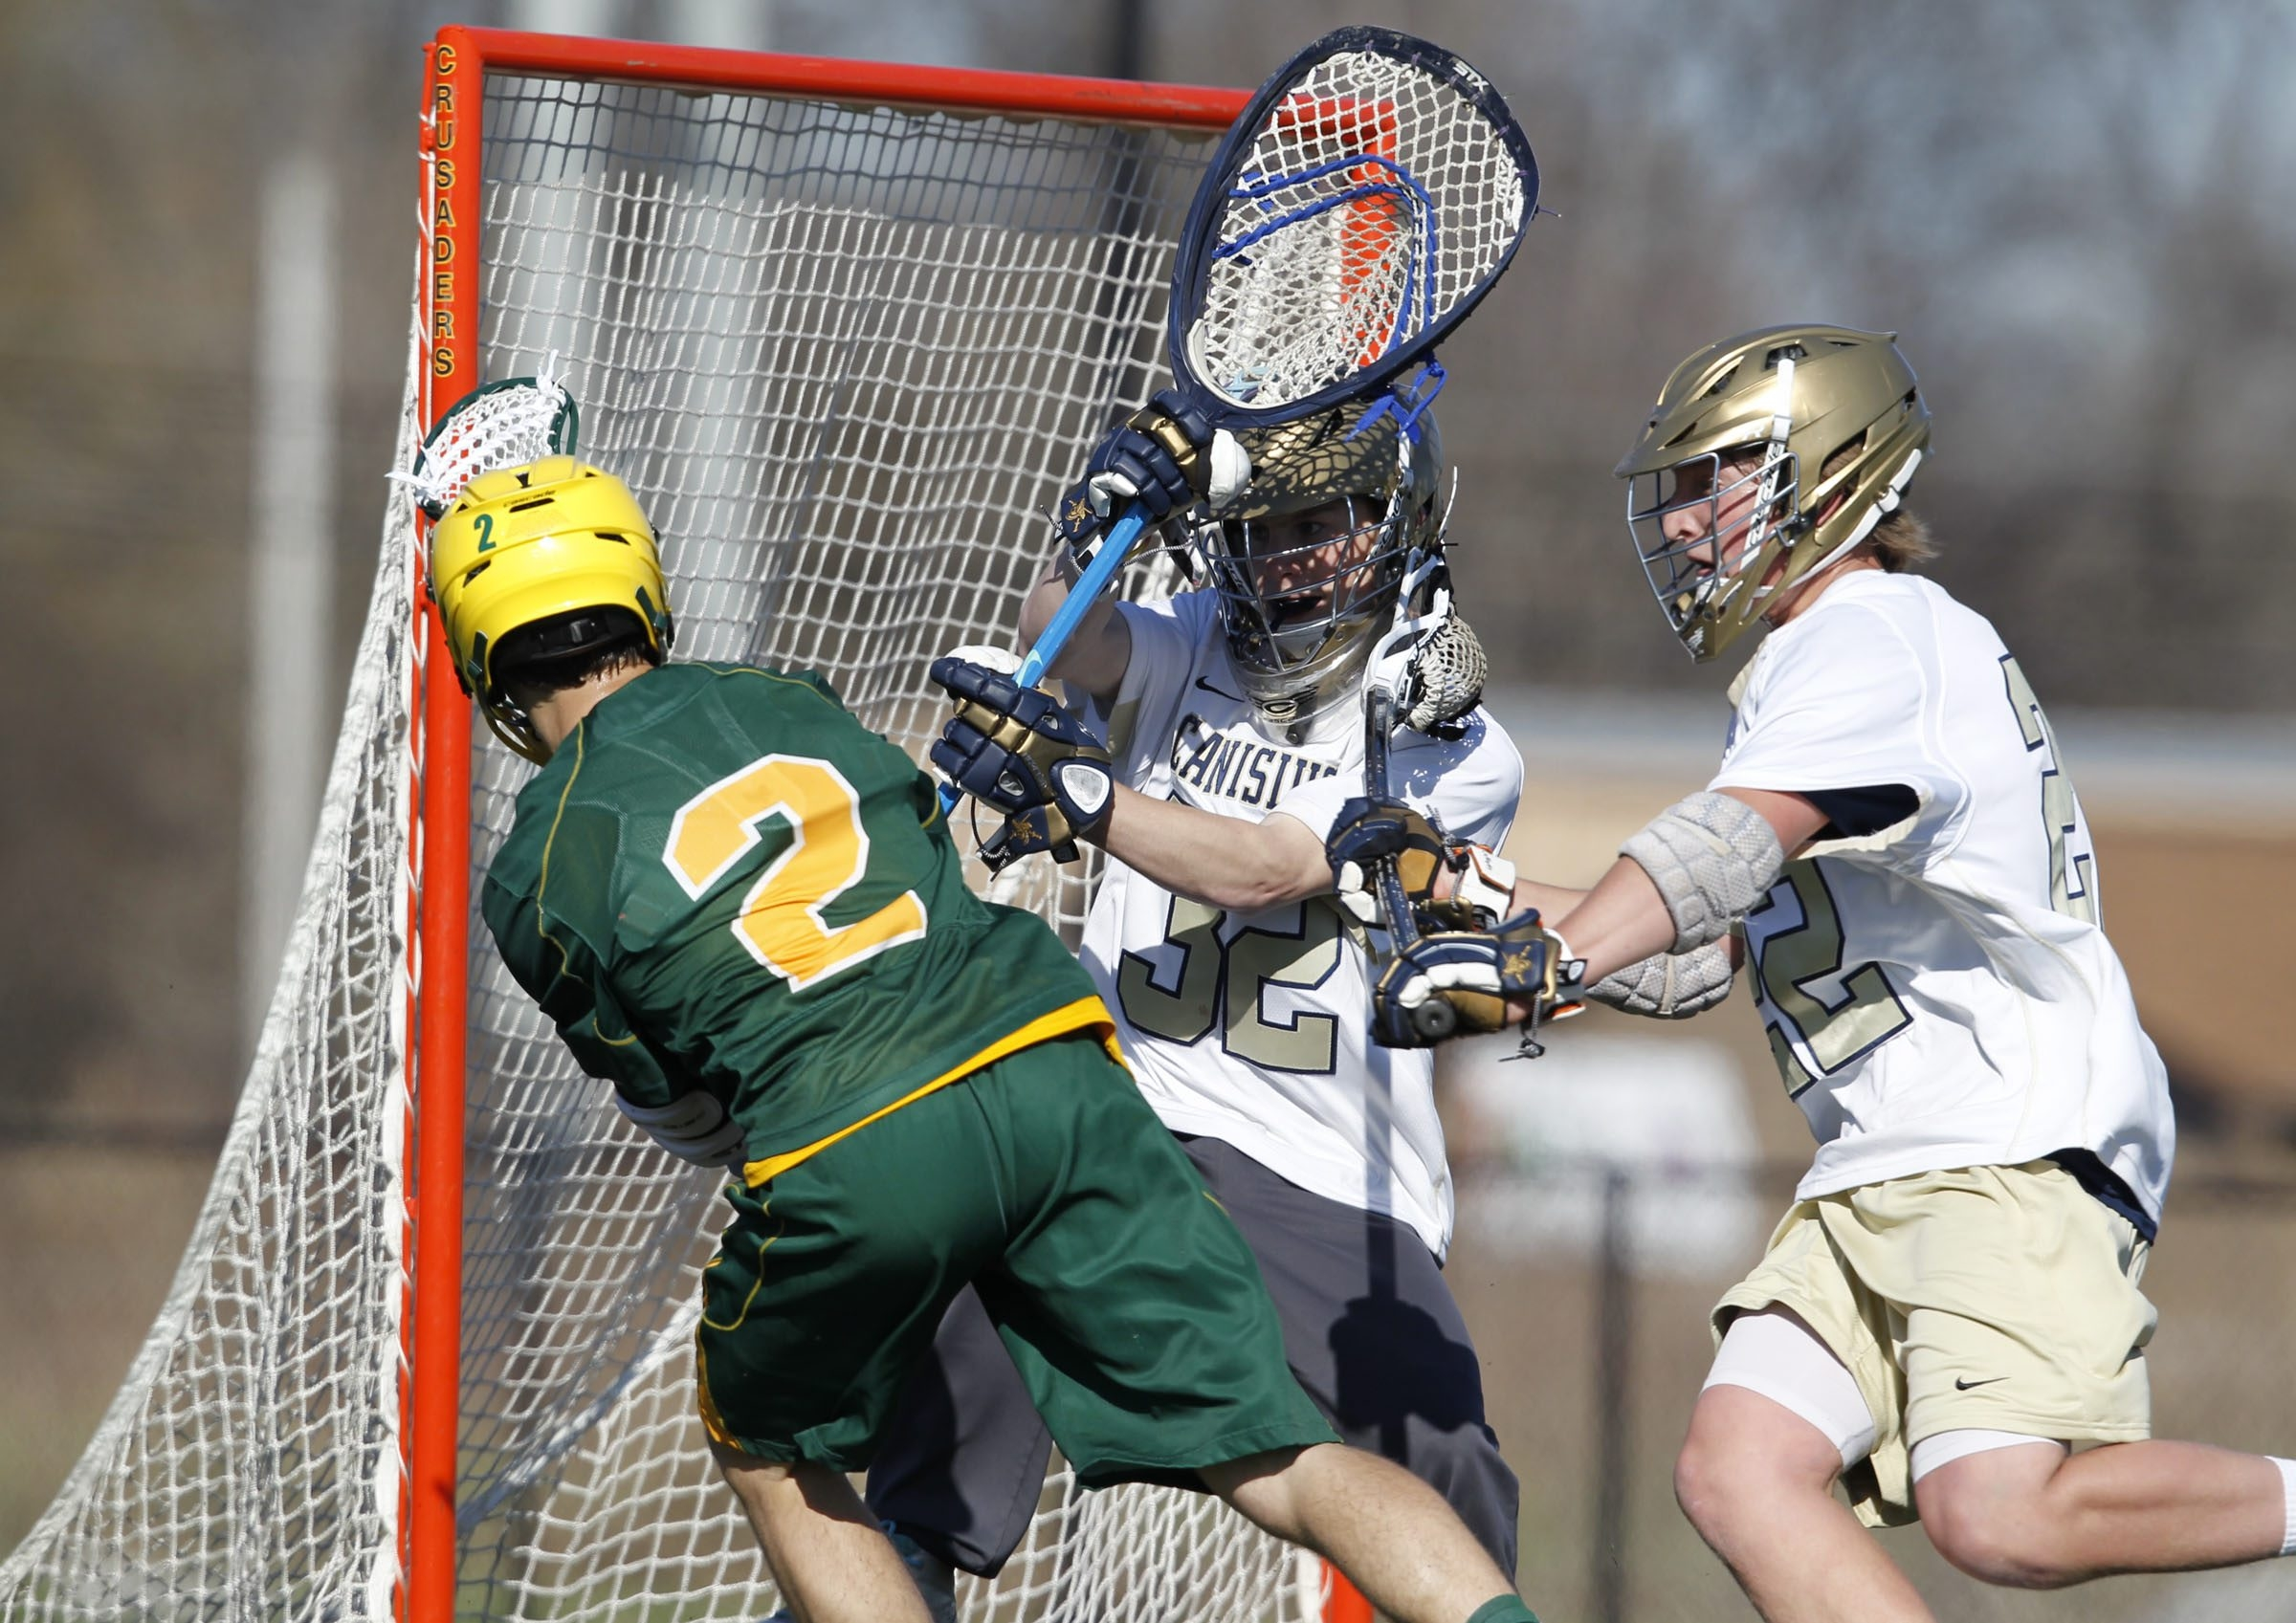 Bishop Timon-St. Jude's Layne Collins scores on Canisius goalie Andrew Cleary during the Tigers' 22-6 win on Thursday.